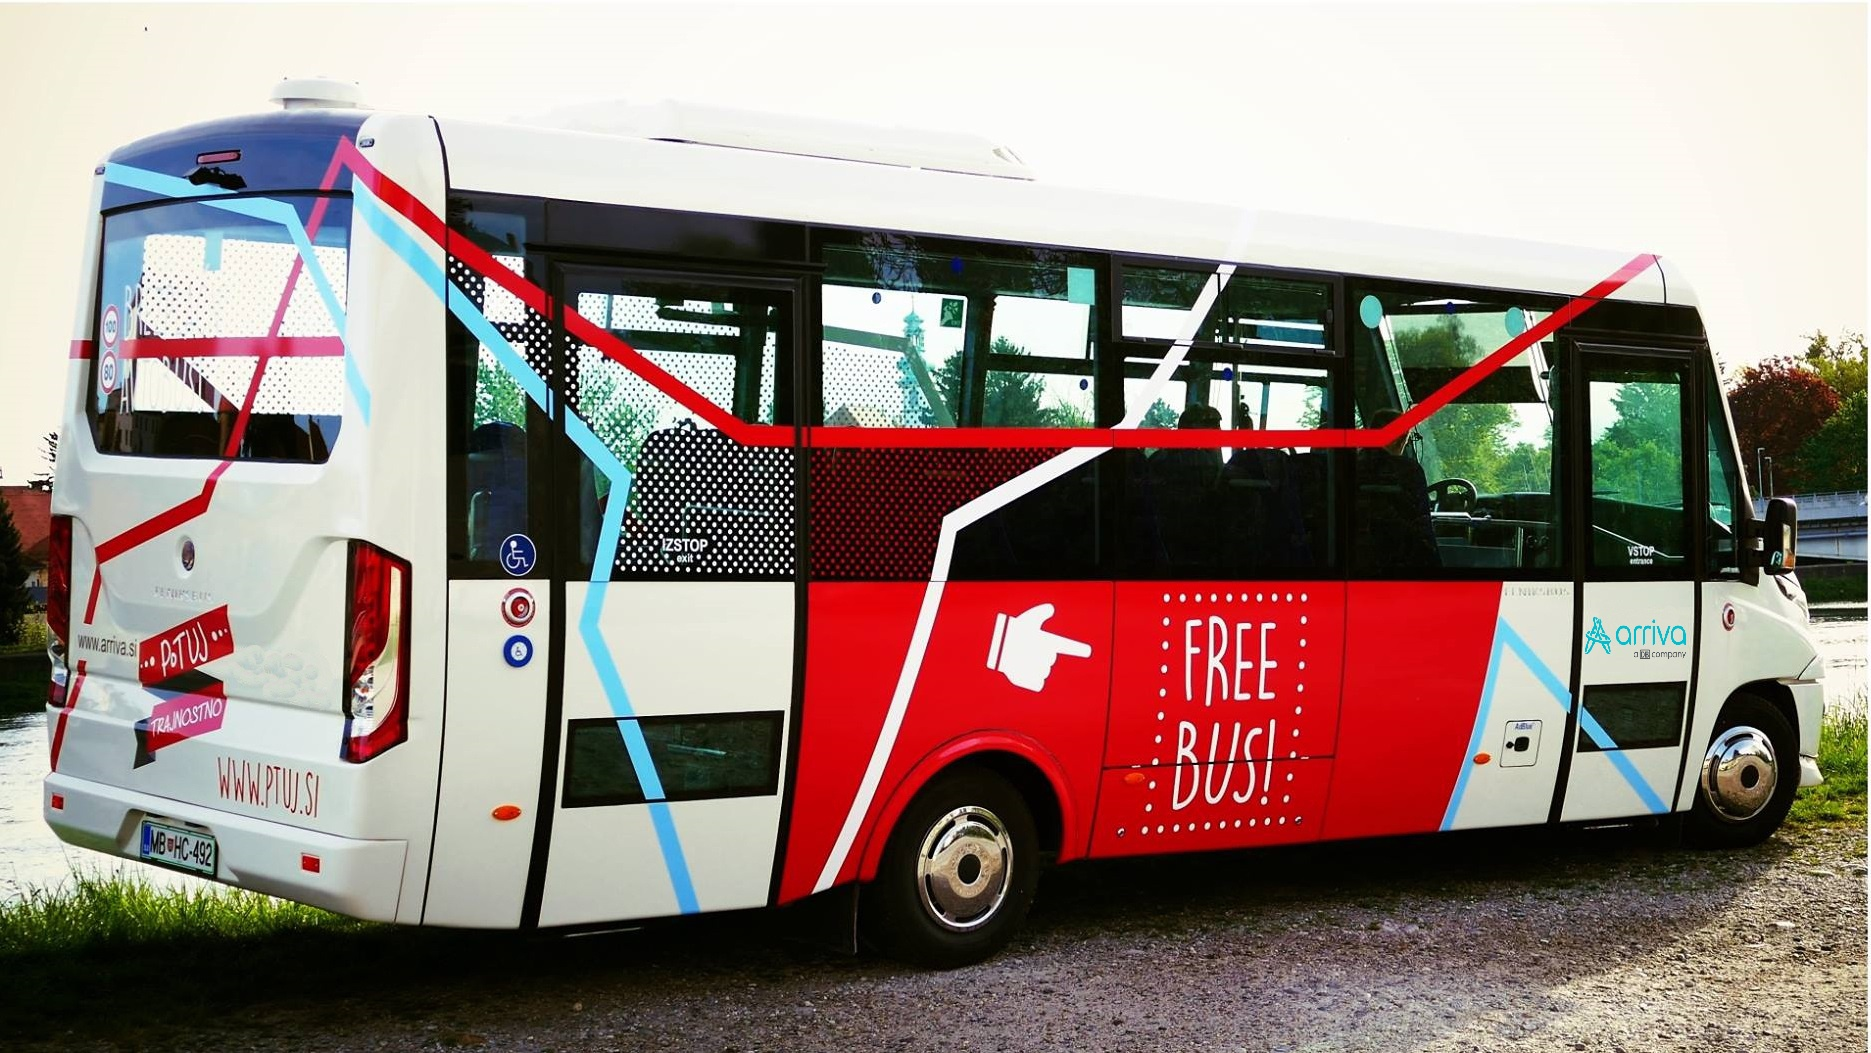 From 2015 citizen as well as tourist can travel in city Ptuj with a free of charge city bus. Municipality Ptuj is by this promoting sustainable mobility and wants to offer public transport also to those who do not have own means of transport or want to lower the number of trips with personal cars.